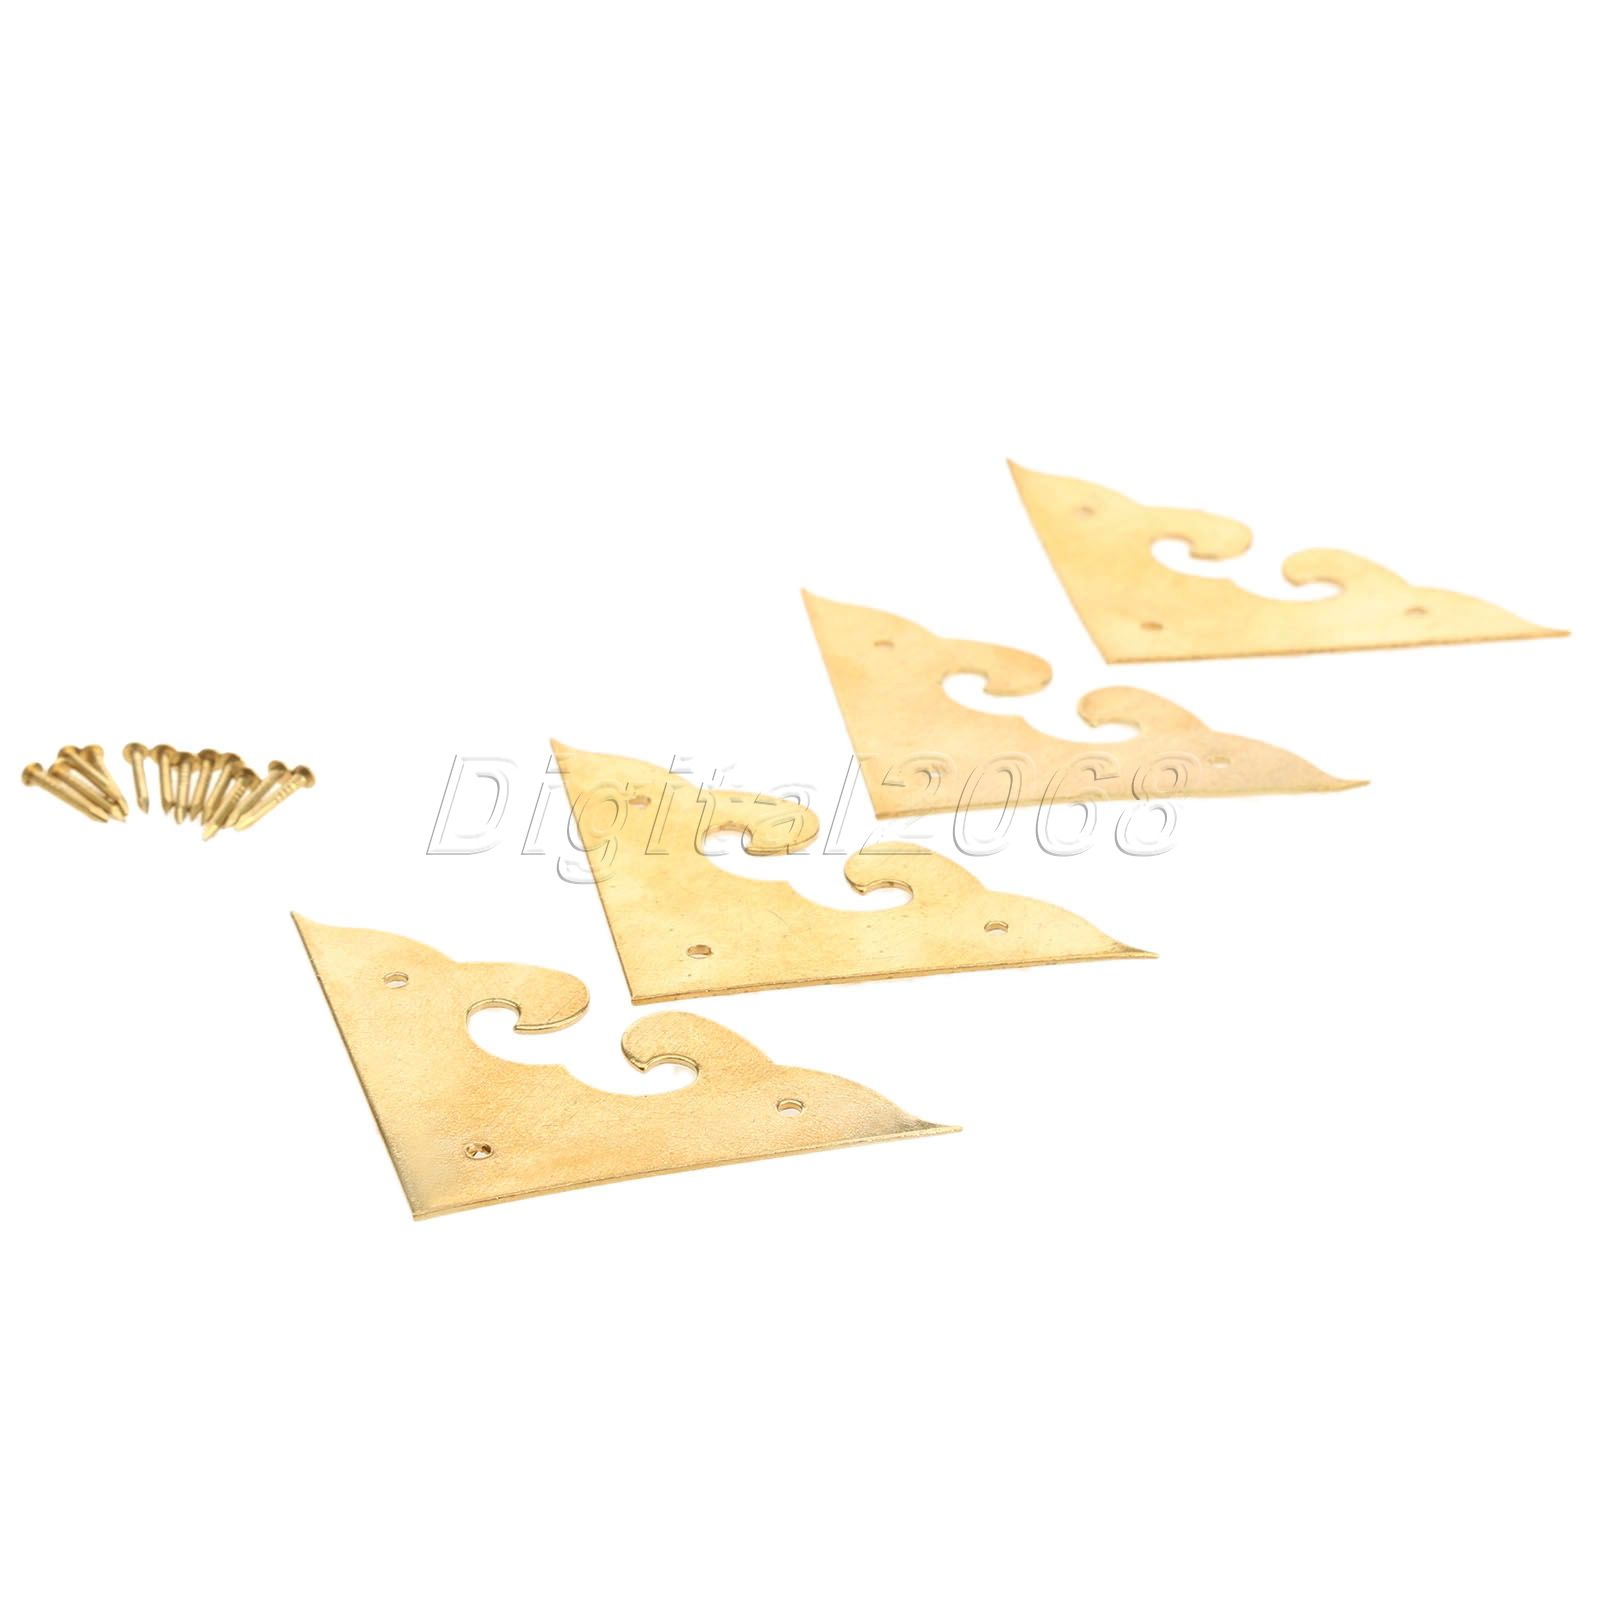 High Quality 4 Corners Brackets Chinese Furniture Hardware Brass for Cabinet Trunk Jewelry Box Chest 4.5*4.5*4.5cm with Nails